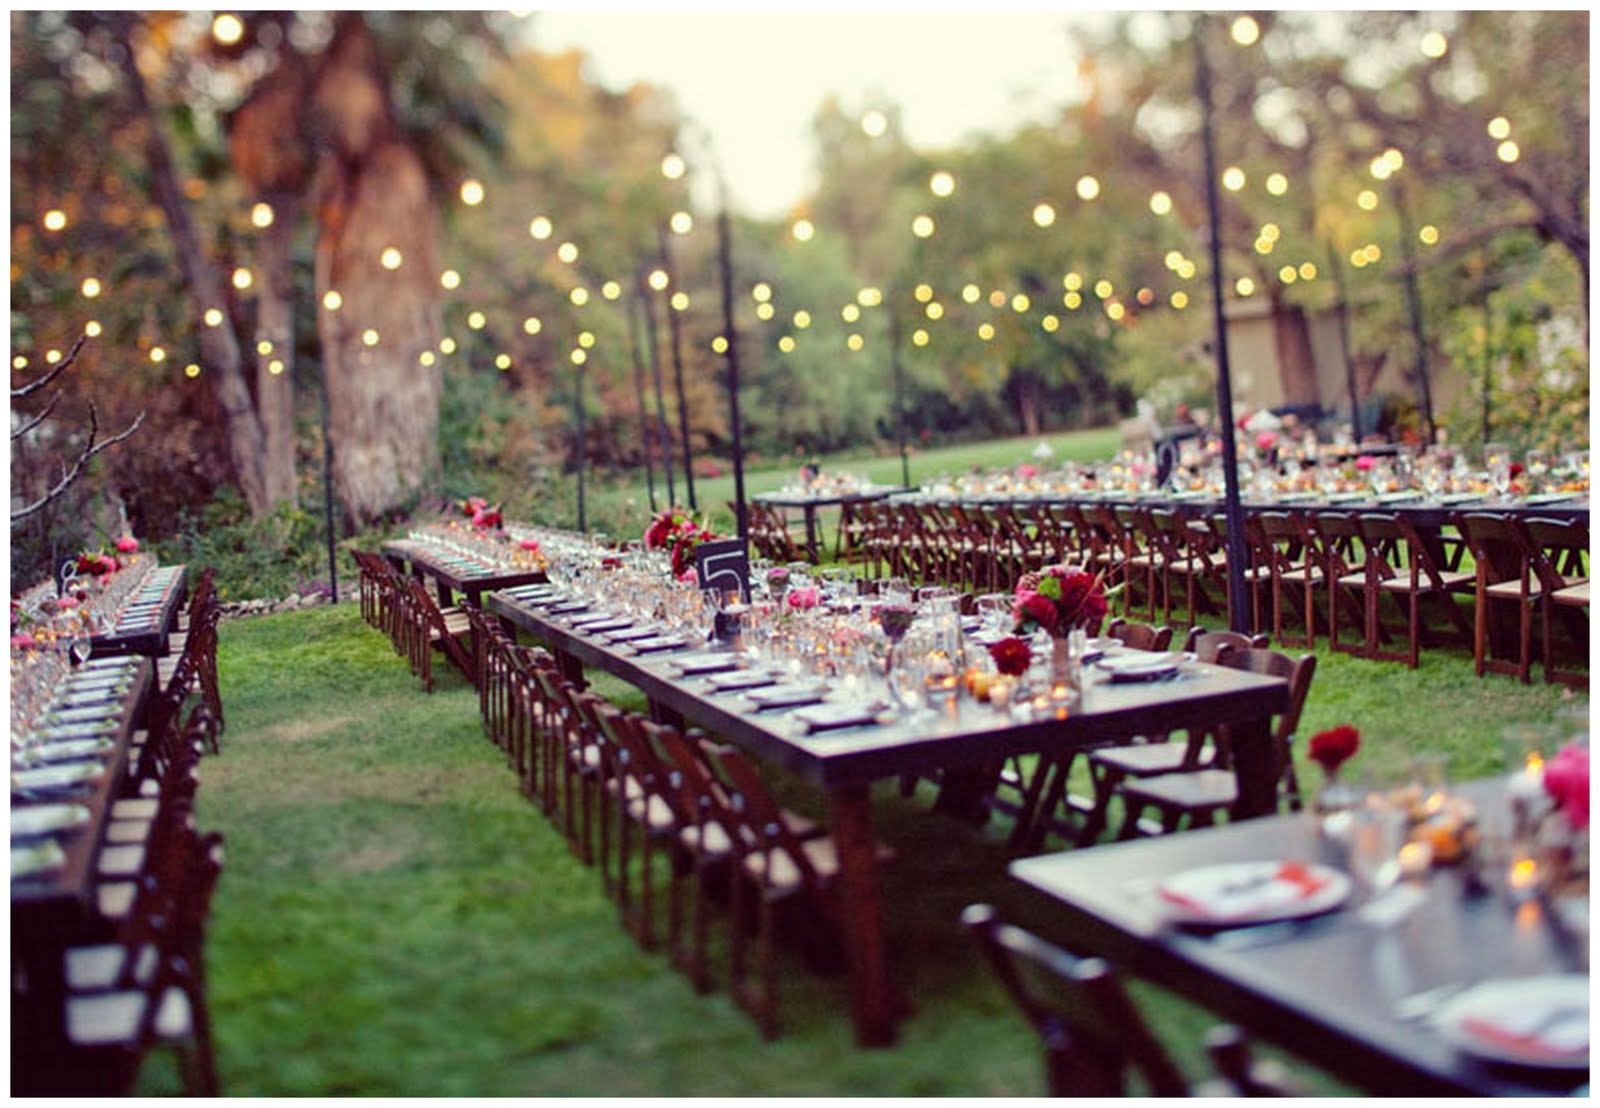 Real enchanted garden wedding kelly steve for Outdoor wedding decorating ideas